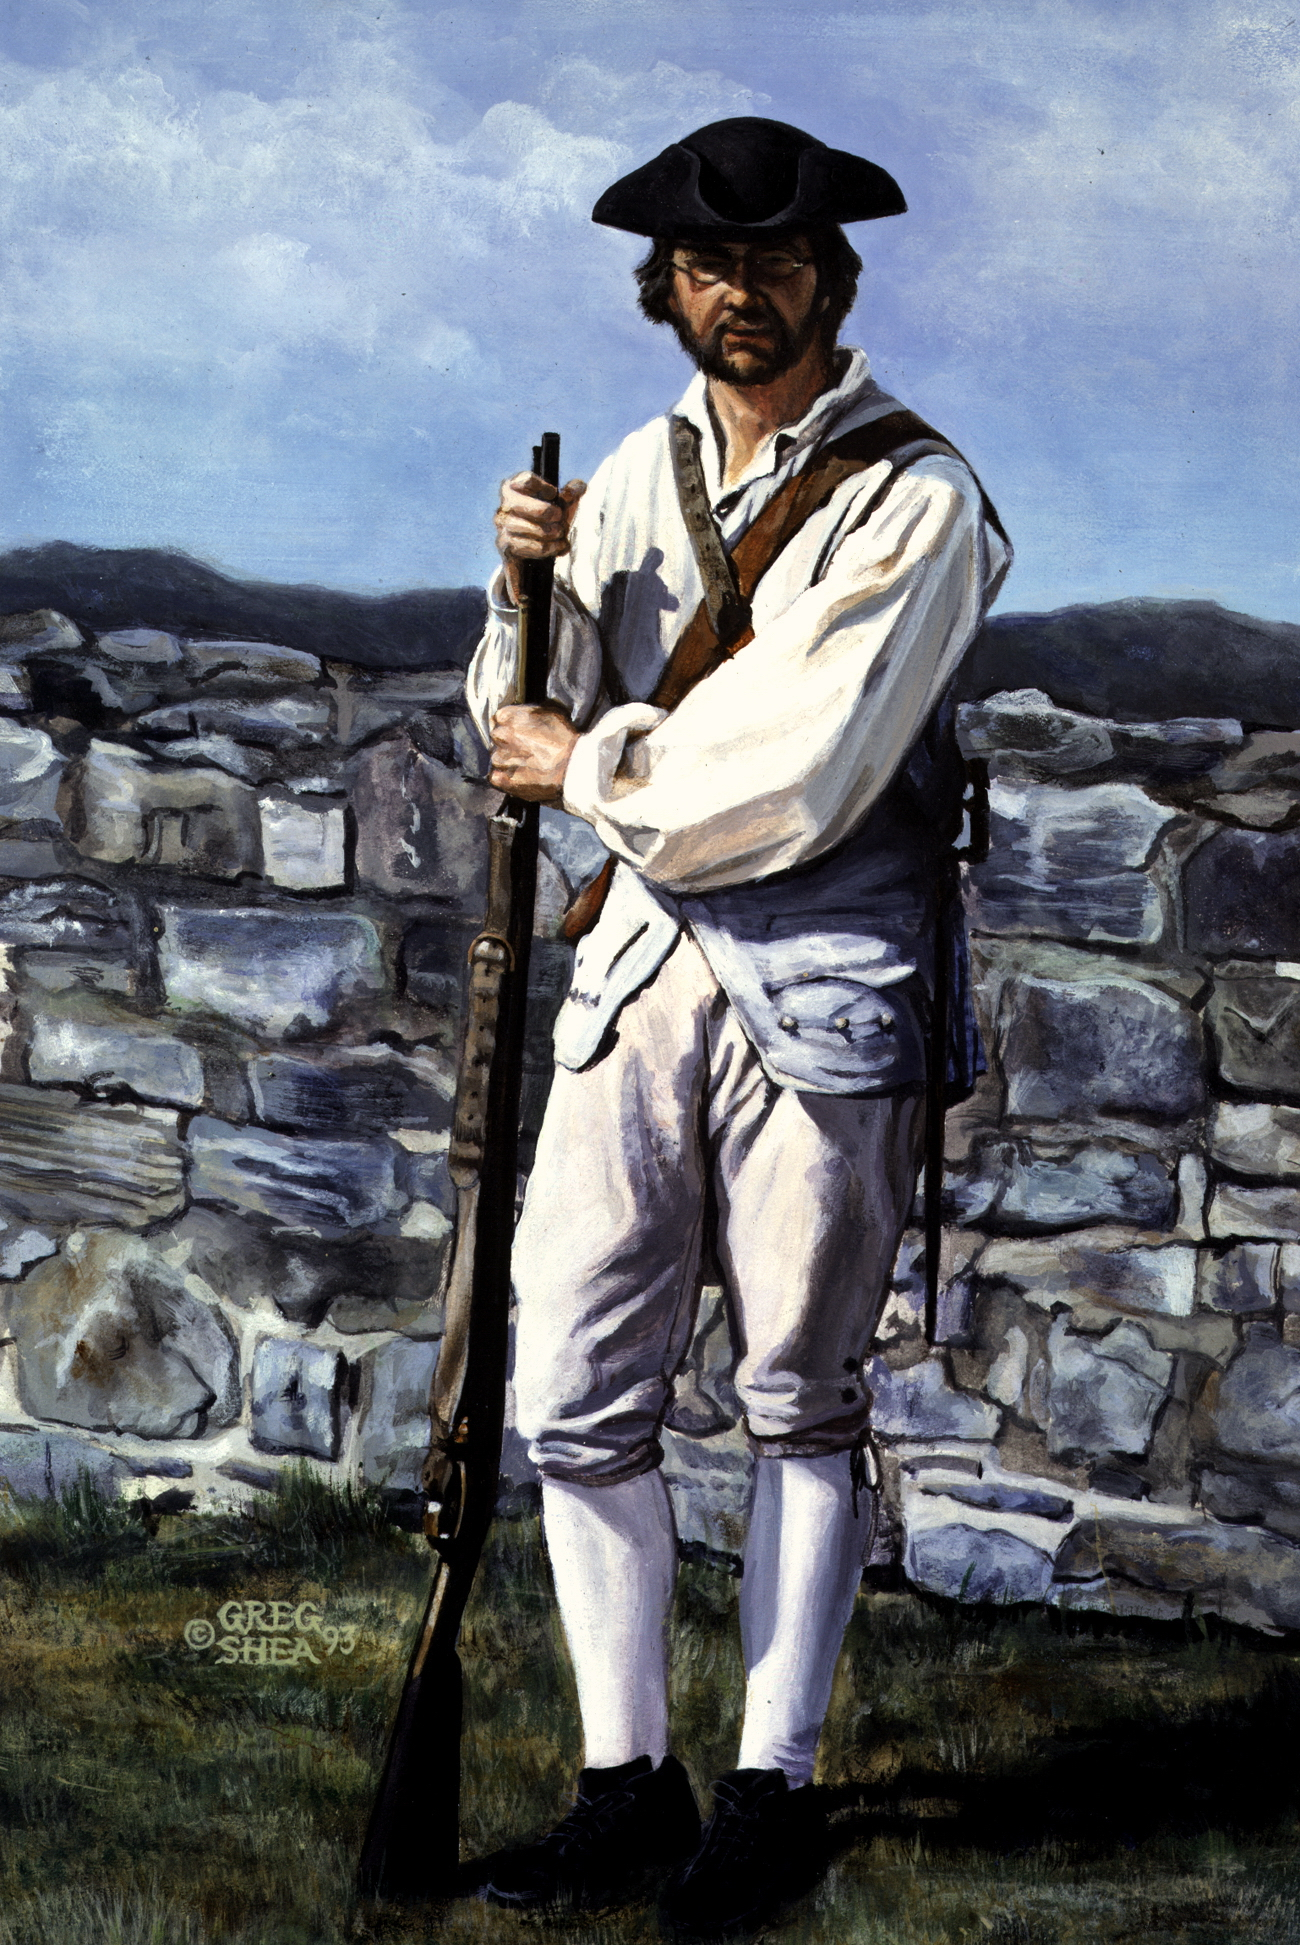 """18th Century French Soldier  , Illustration, 1993. Acrylic on board, 8 1/2 x 12 1/2"""". Available for purchase."""